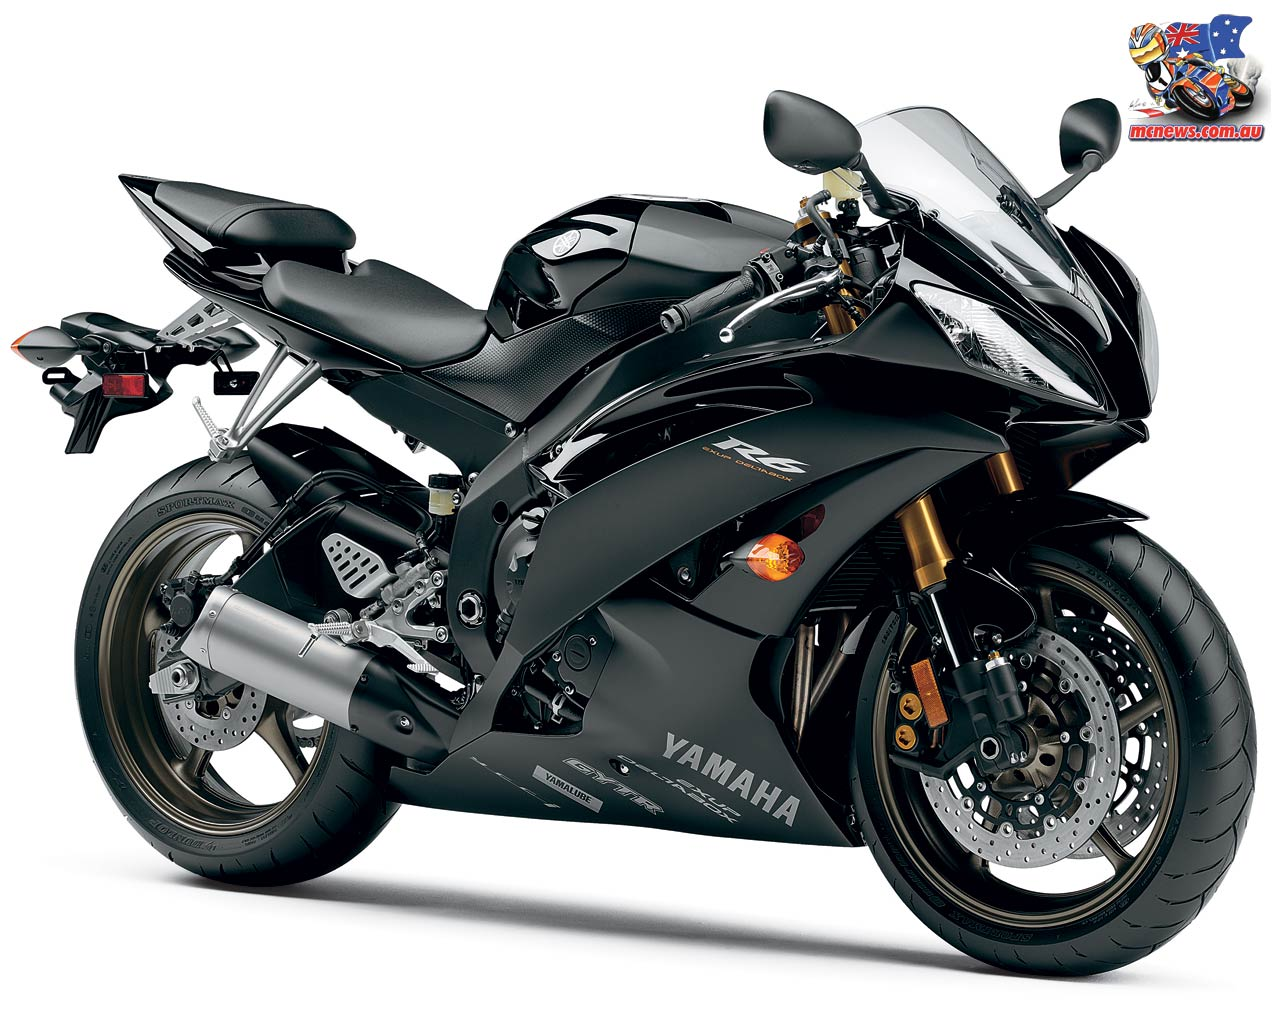 Black Yamaha R6 Wallpaper 7298 Hd Wallpapers in Bikes   Imagescicom 1280x1024